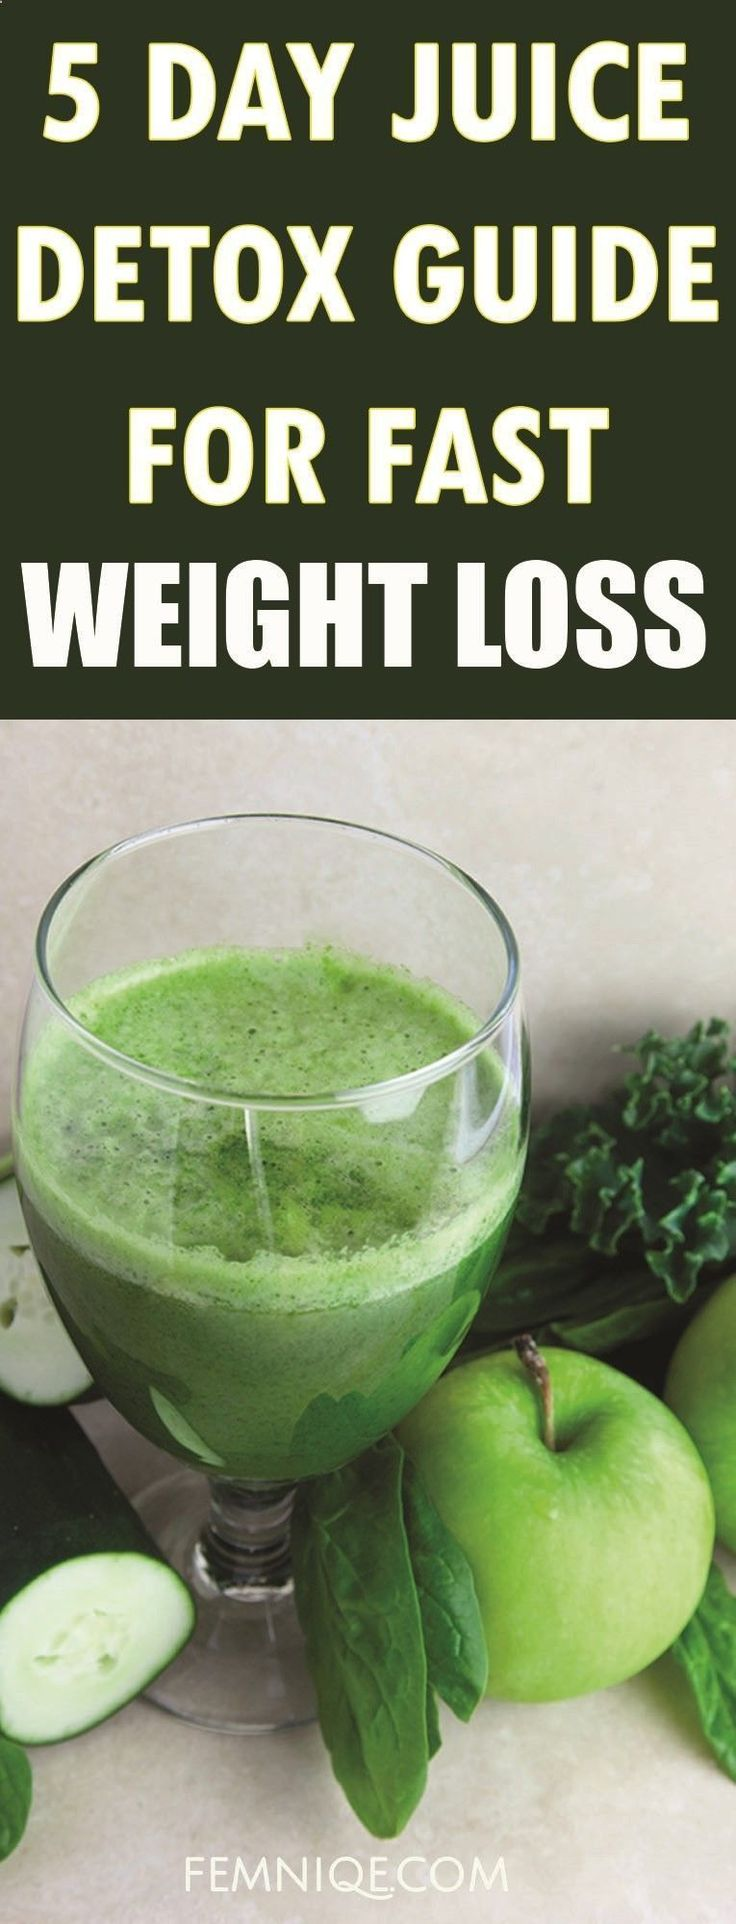 The 25 best 5 day juice cleanse ideas on pinterest 7 day detox 5 day detox guide reset your body and start to melt away stubborn fat fast detox drinks to lose weight fast detox drinks to lose weight fat flush malvernweather Gallery